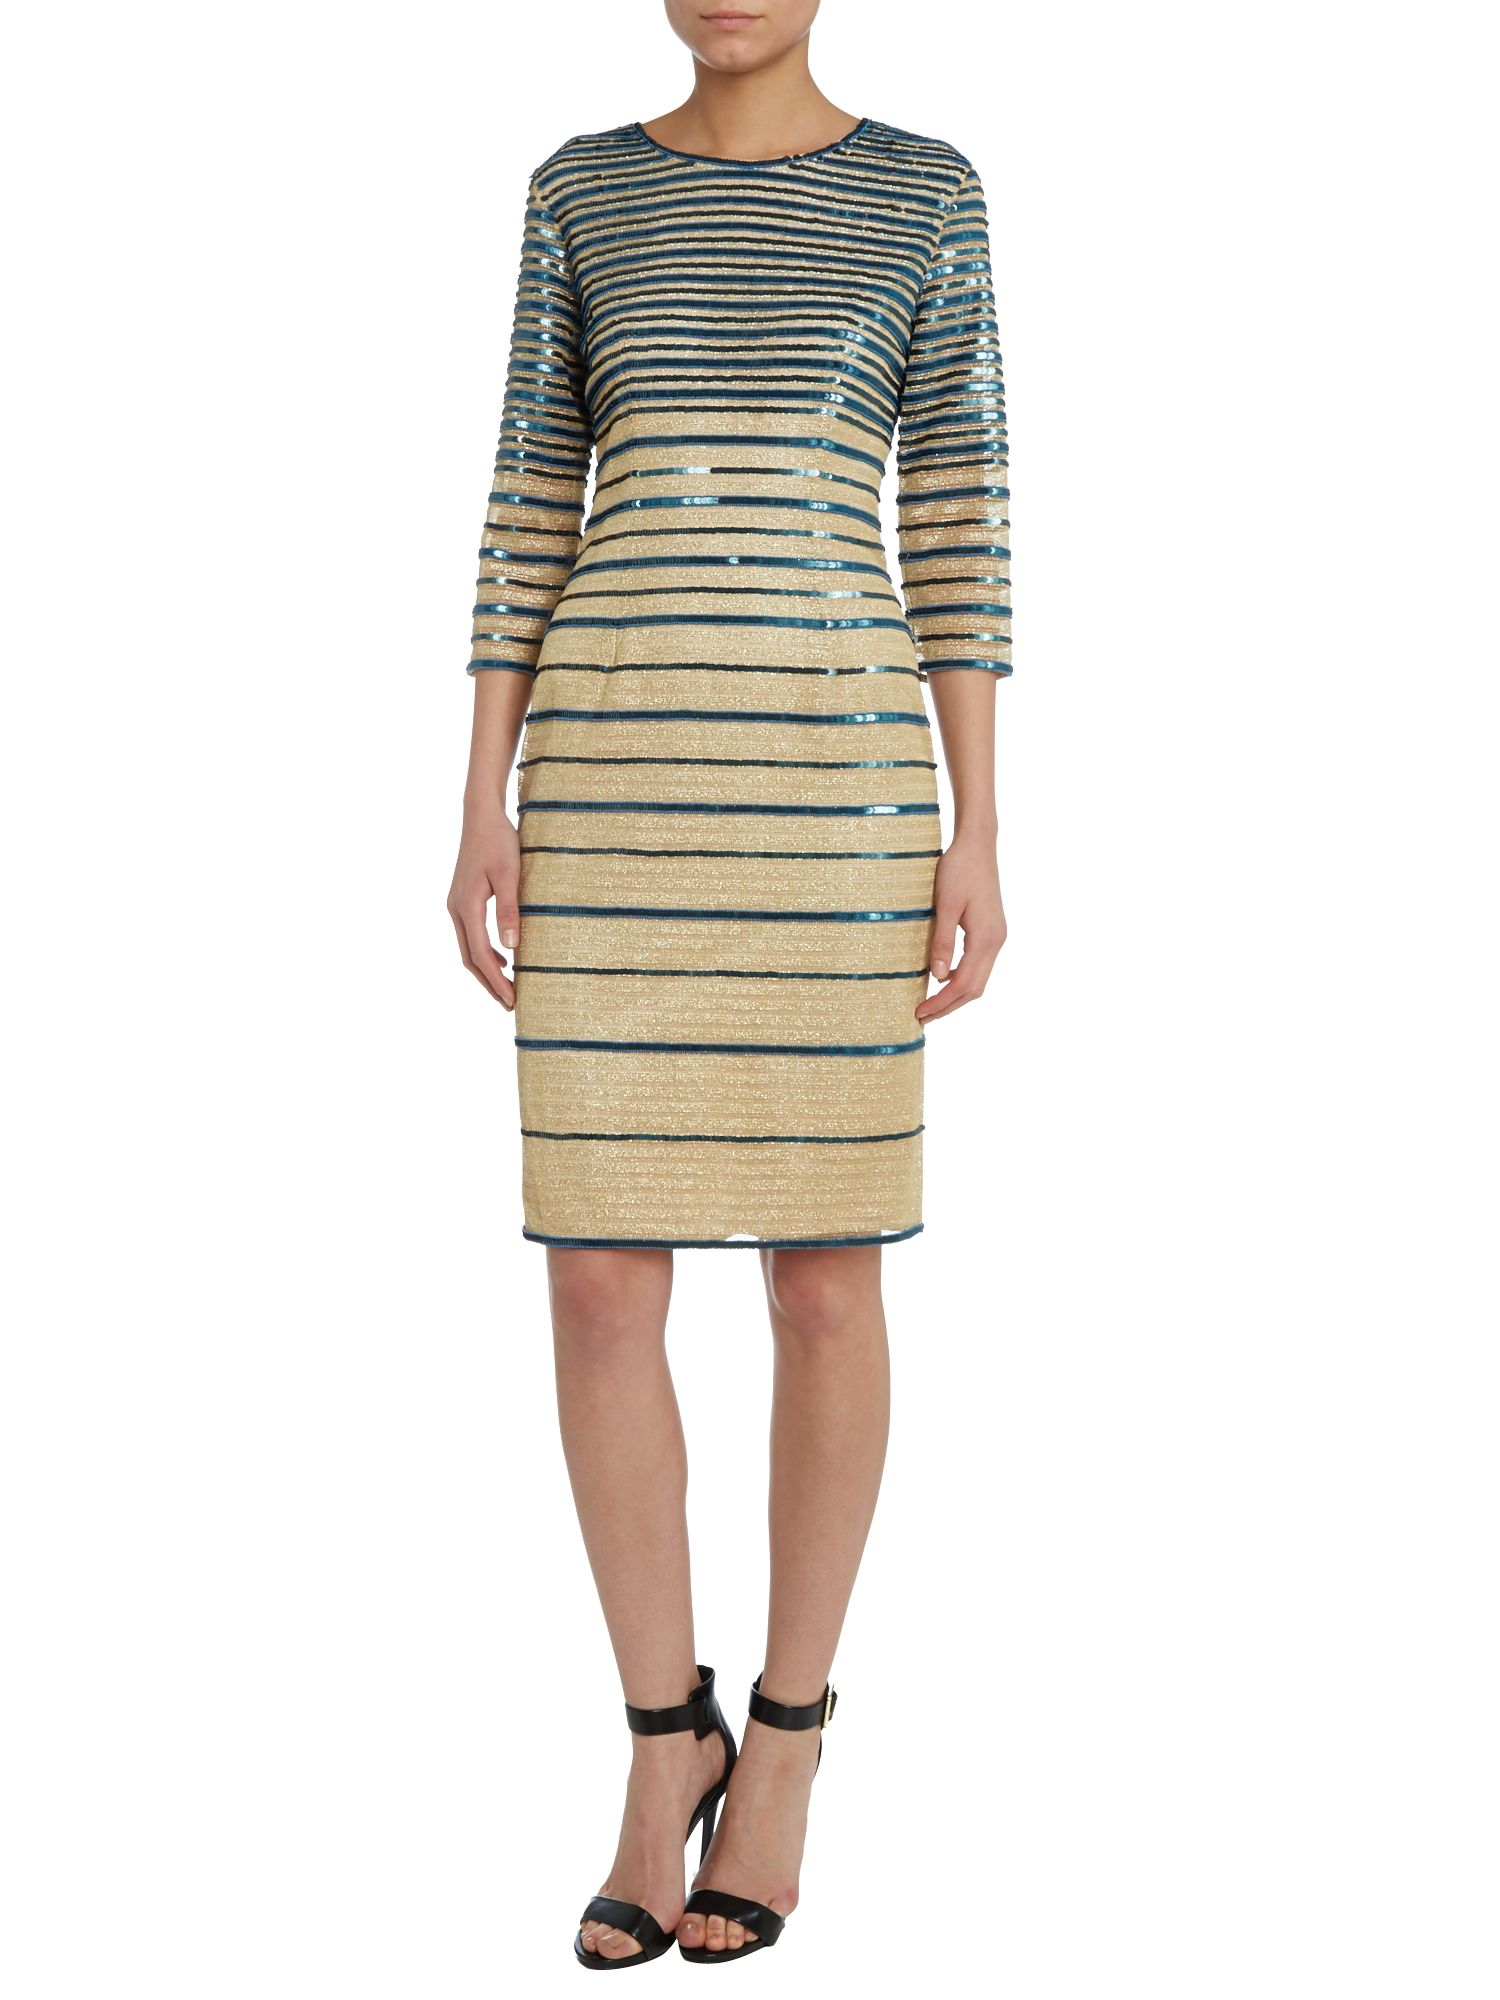 3/4 sleeve Ling striped dress